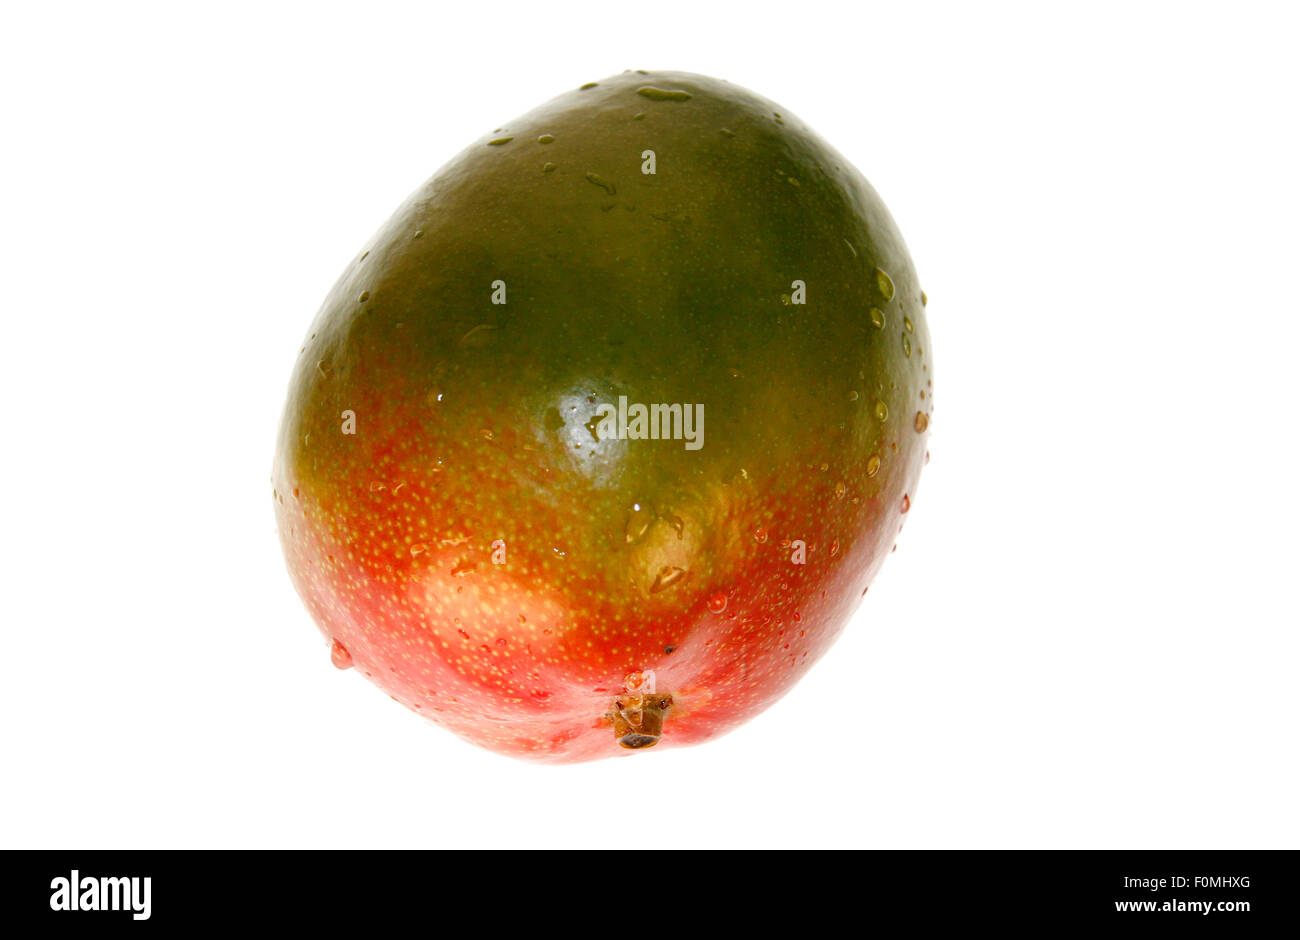 Mango - Symbolbild Nahrungsmittel.- Photo Stock